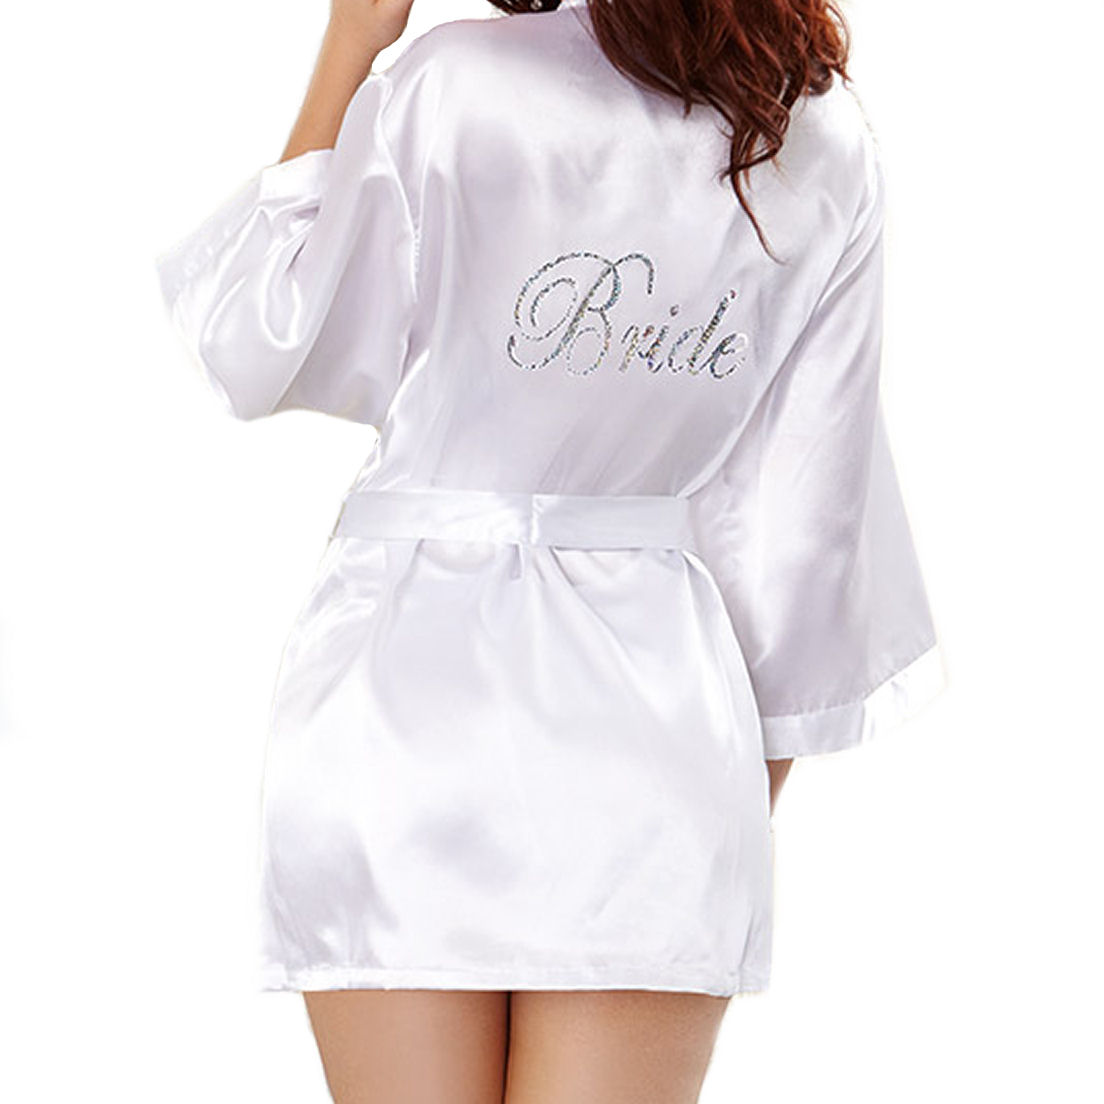 Dreamgirl Bride Robe Chemise Set Silk Elegance Lingerie Swimwear Bridal Sleepwear